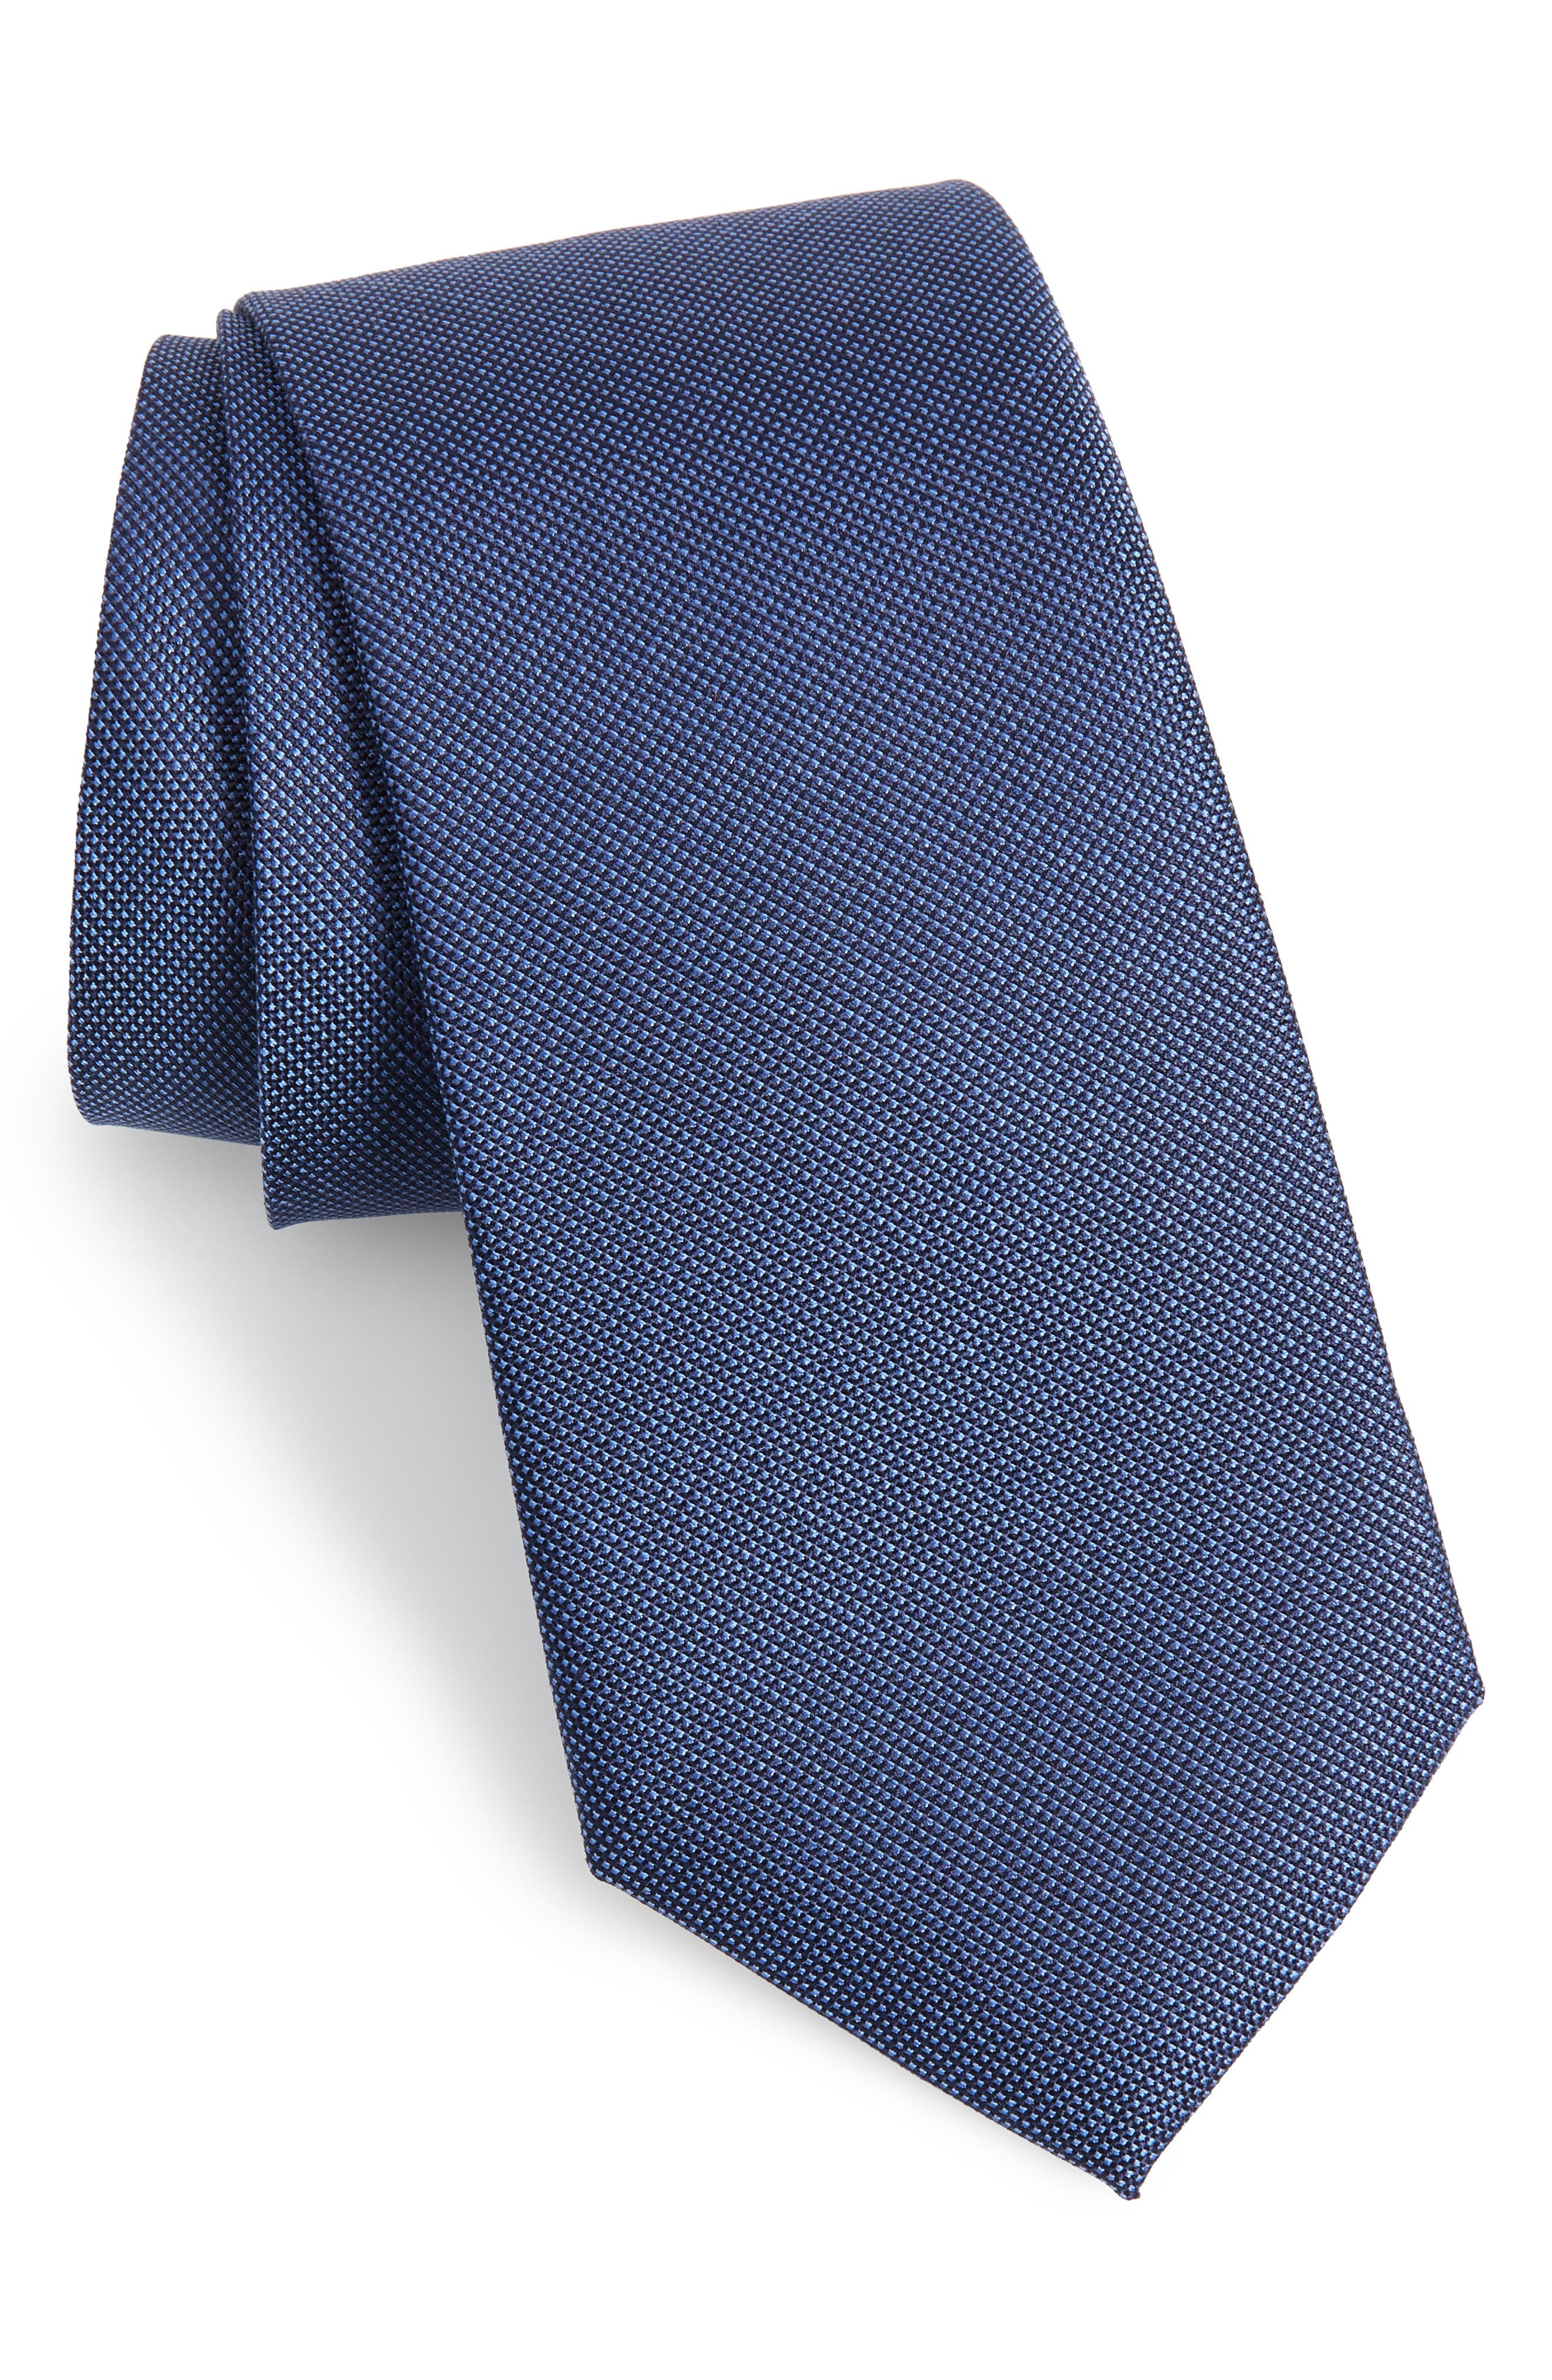 Sargent Solid Silk & Cotton Tie,                             Main thumbnail 1, color,                             NAVY